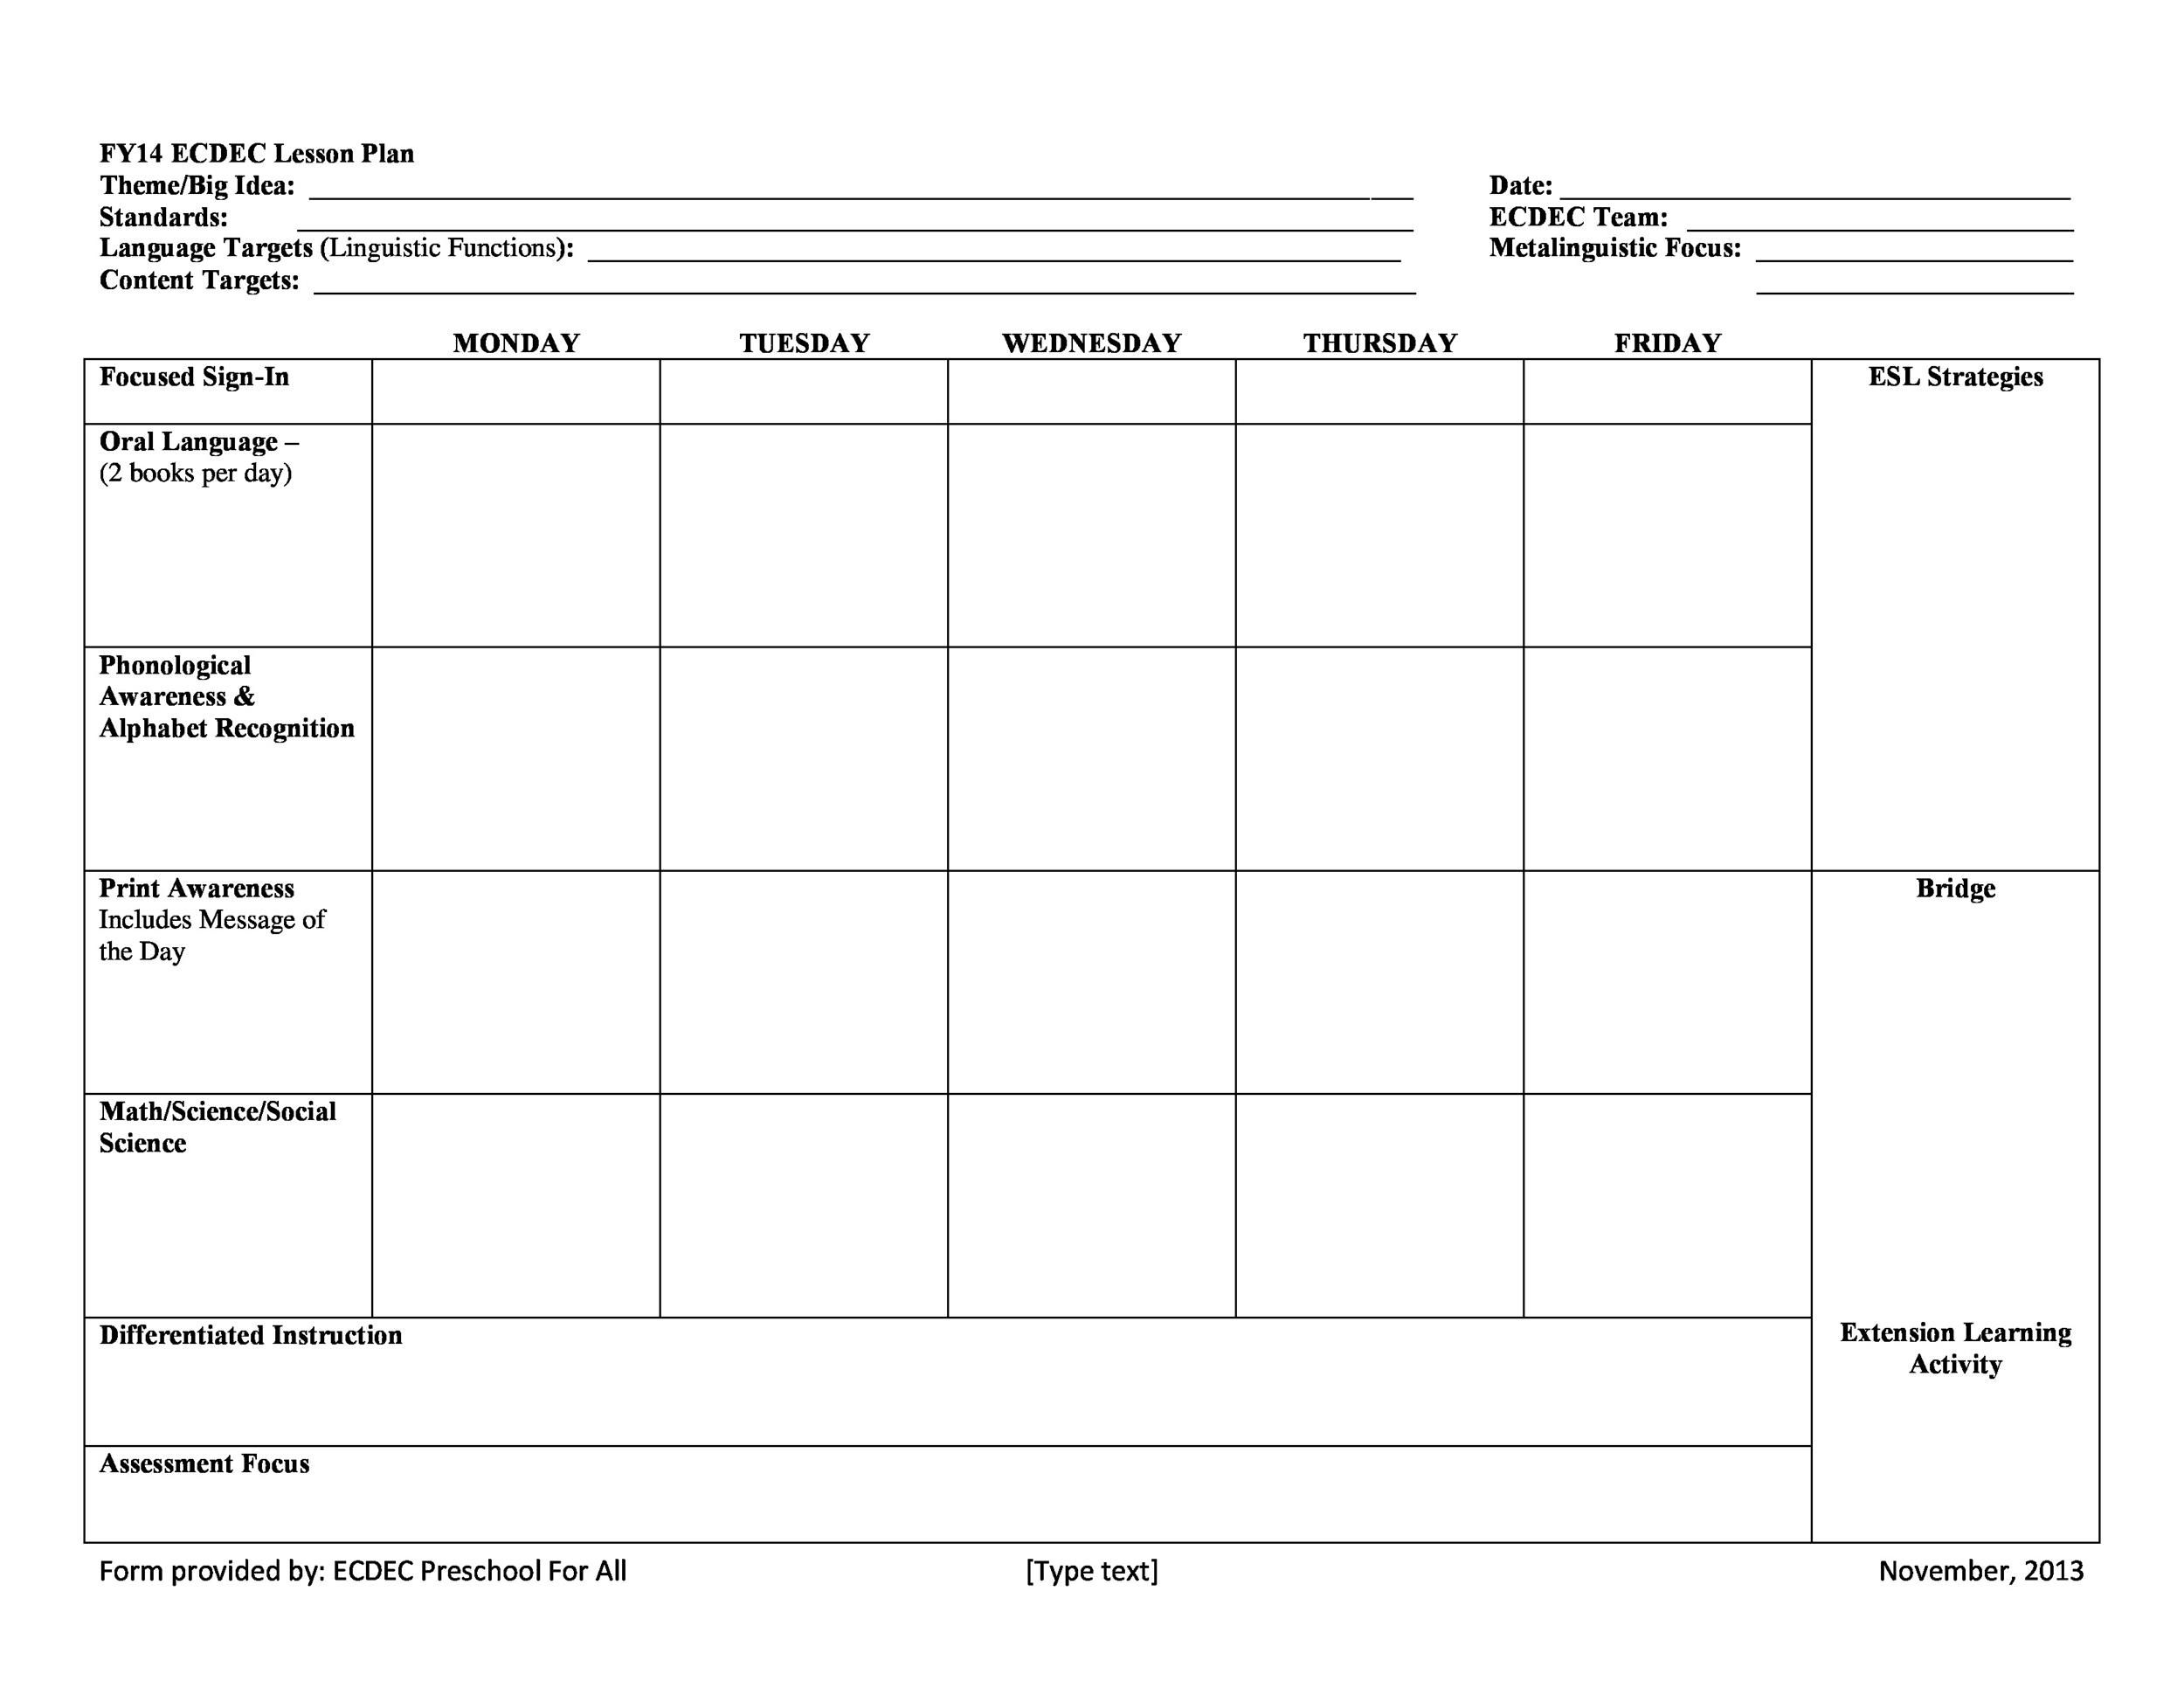 005 Awesome Lesson Plan Template For Preschool Photo  Format Teacher Free PrintableFull